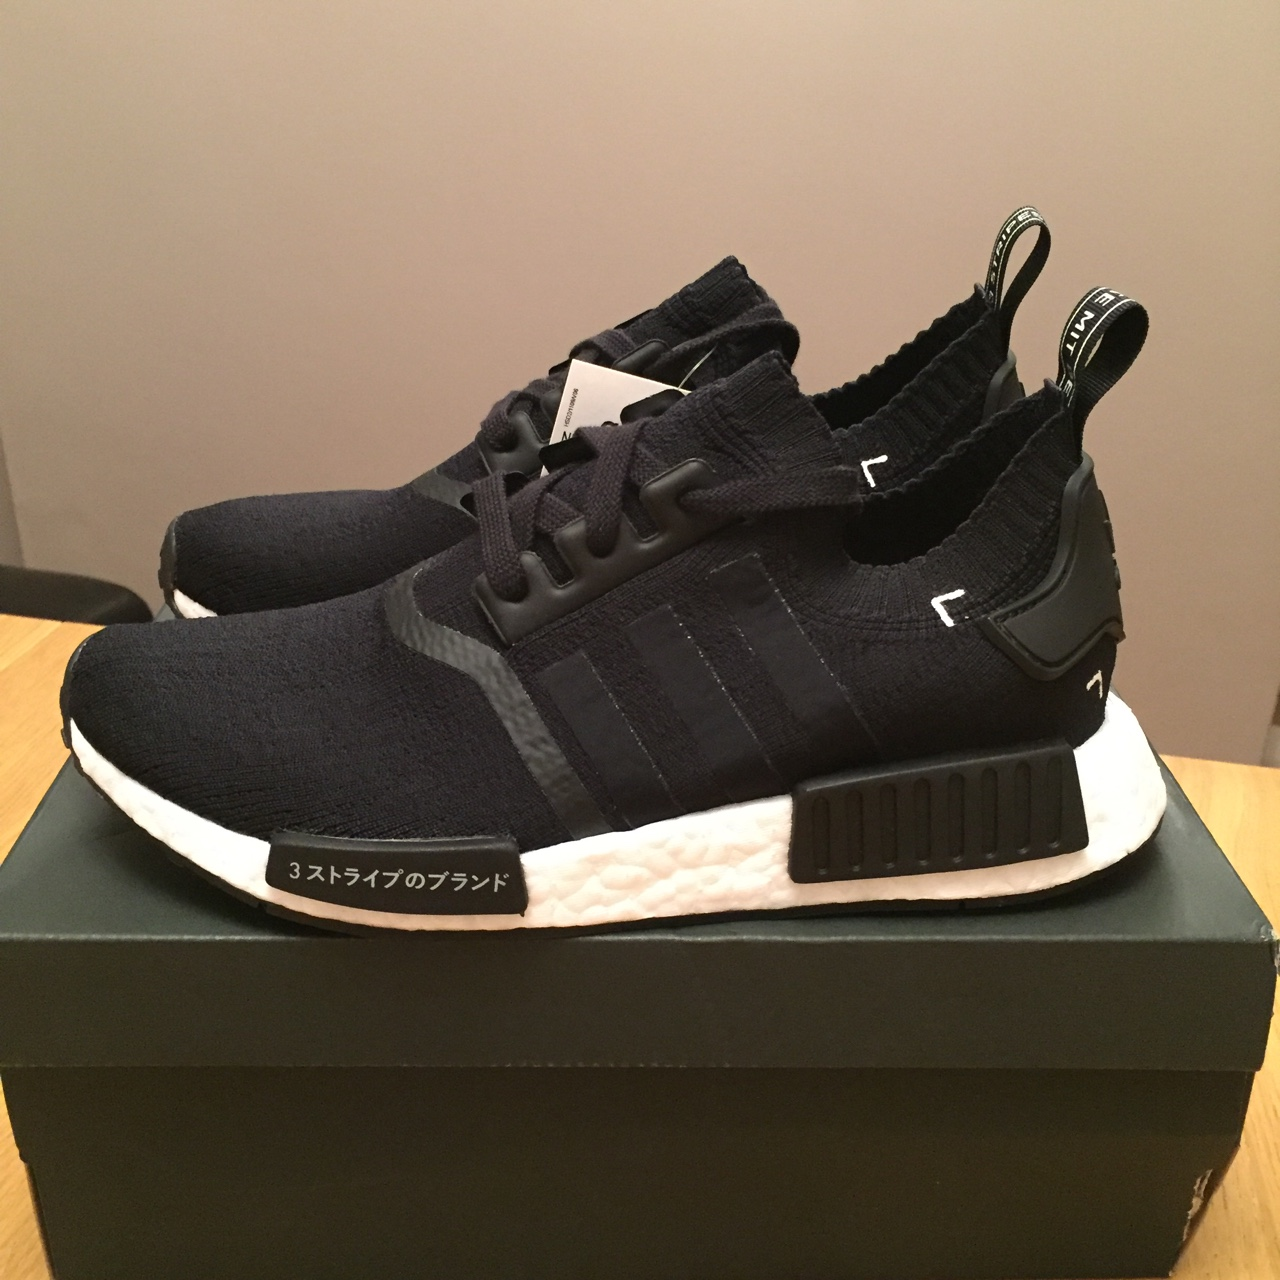 newest 216f3 fad54 Adidas NMD R1 Japan Boost Black Primeknit BNIB size ...